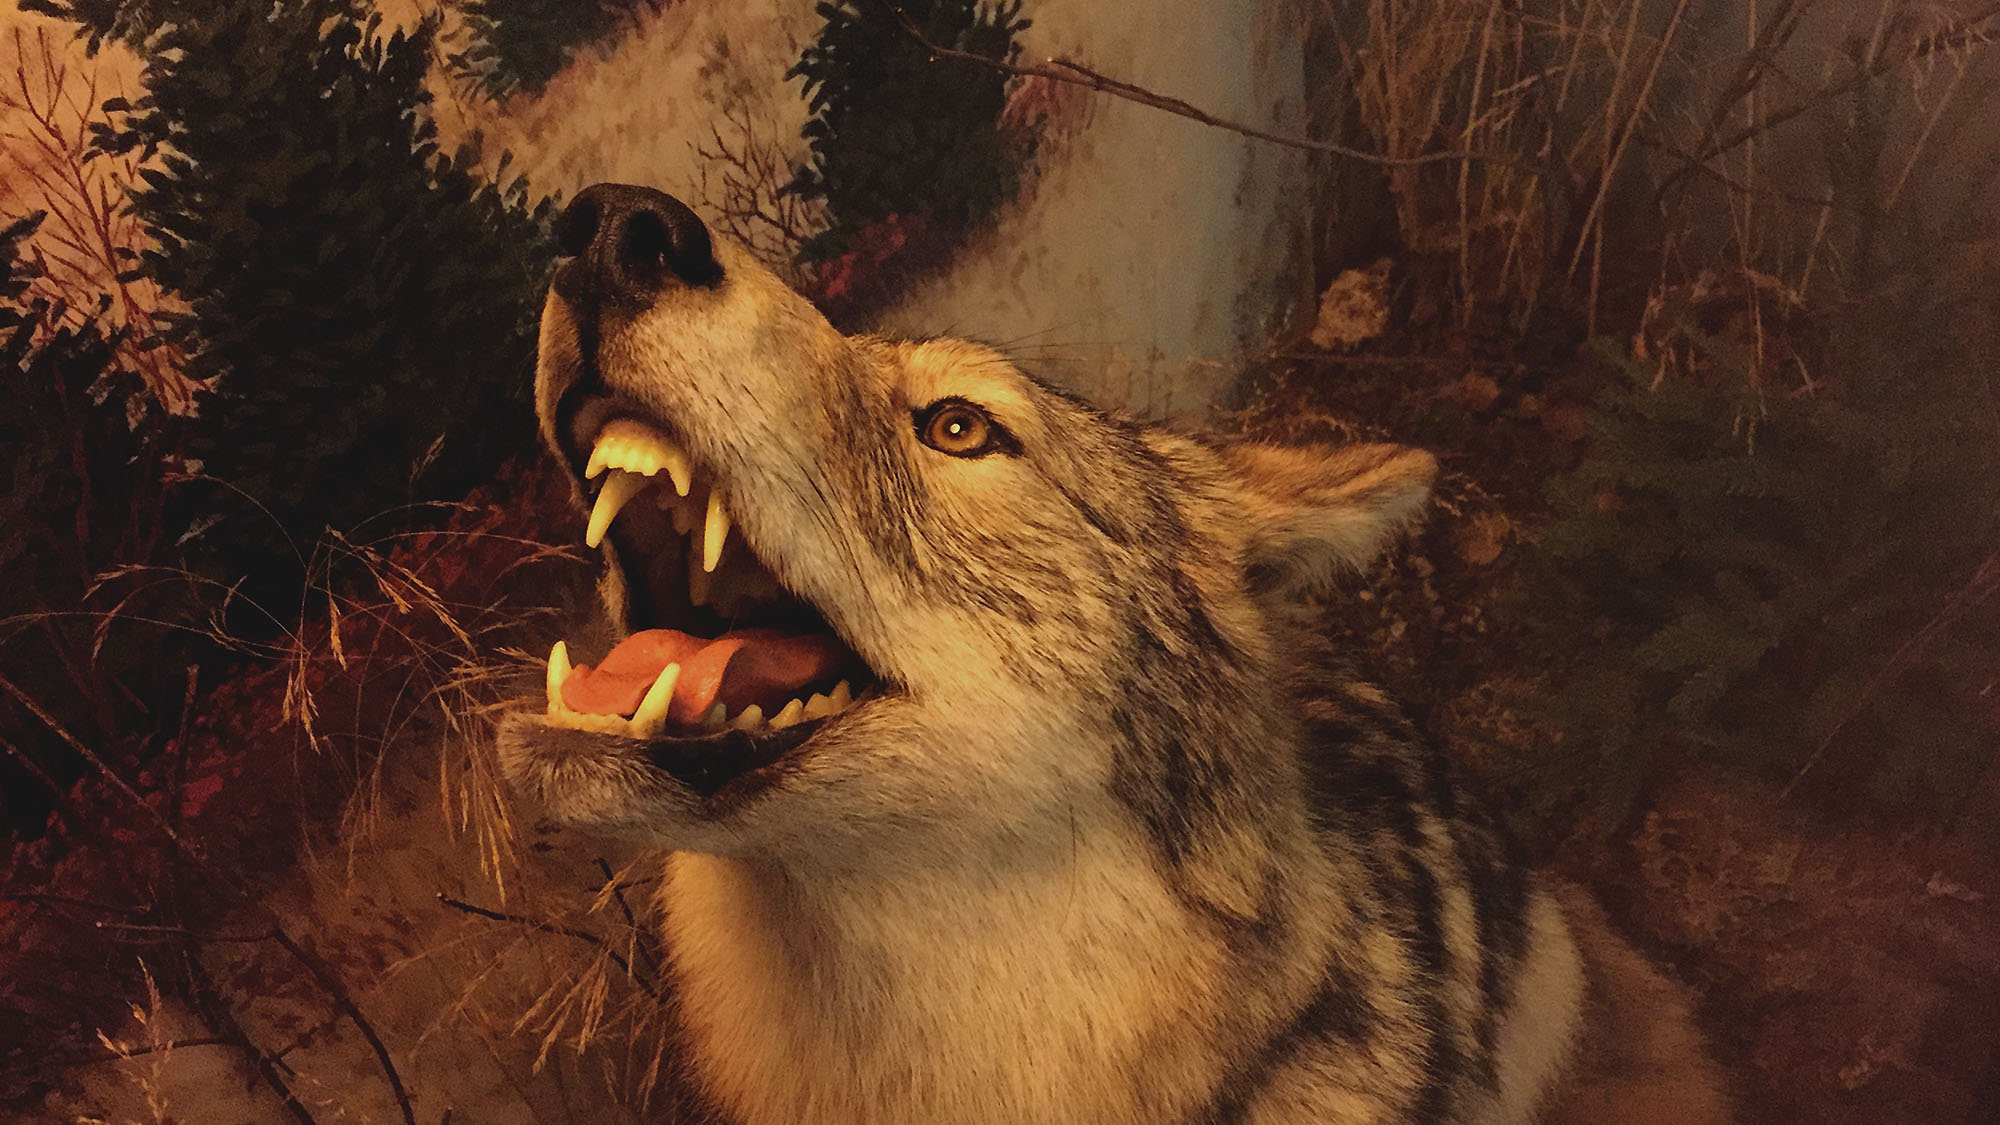 The eastern coyote or coywolf display found at the Nova Scotia Museum of Natural History.